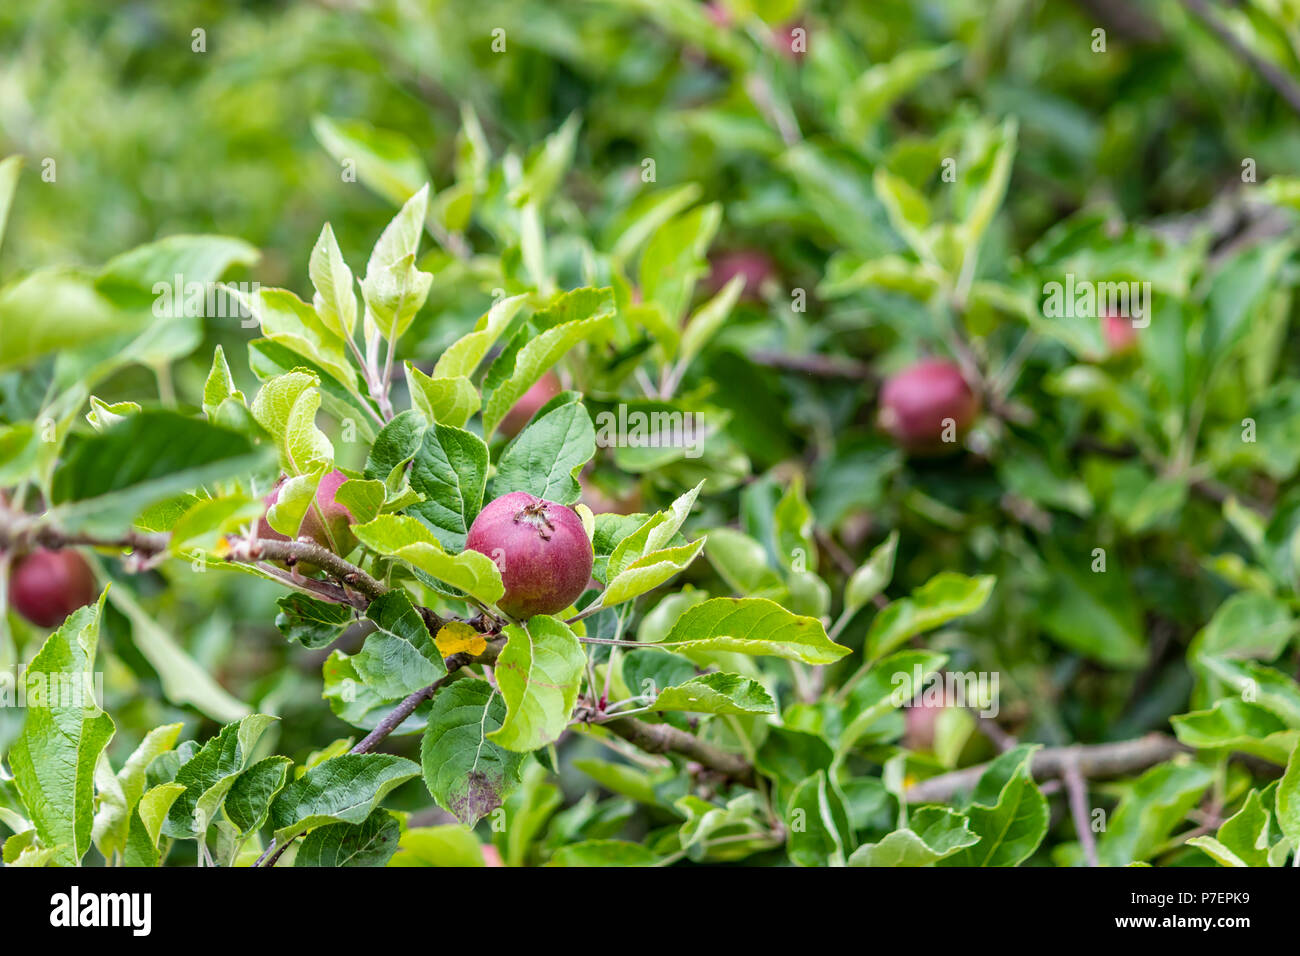 small red apples on green branches - Stock Image